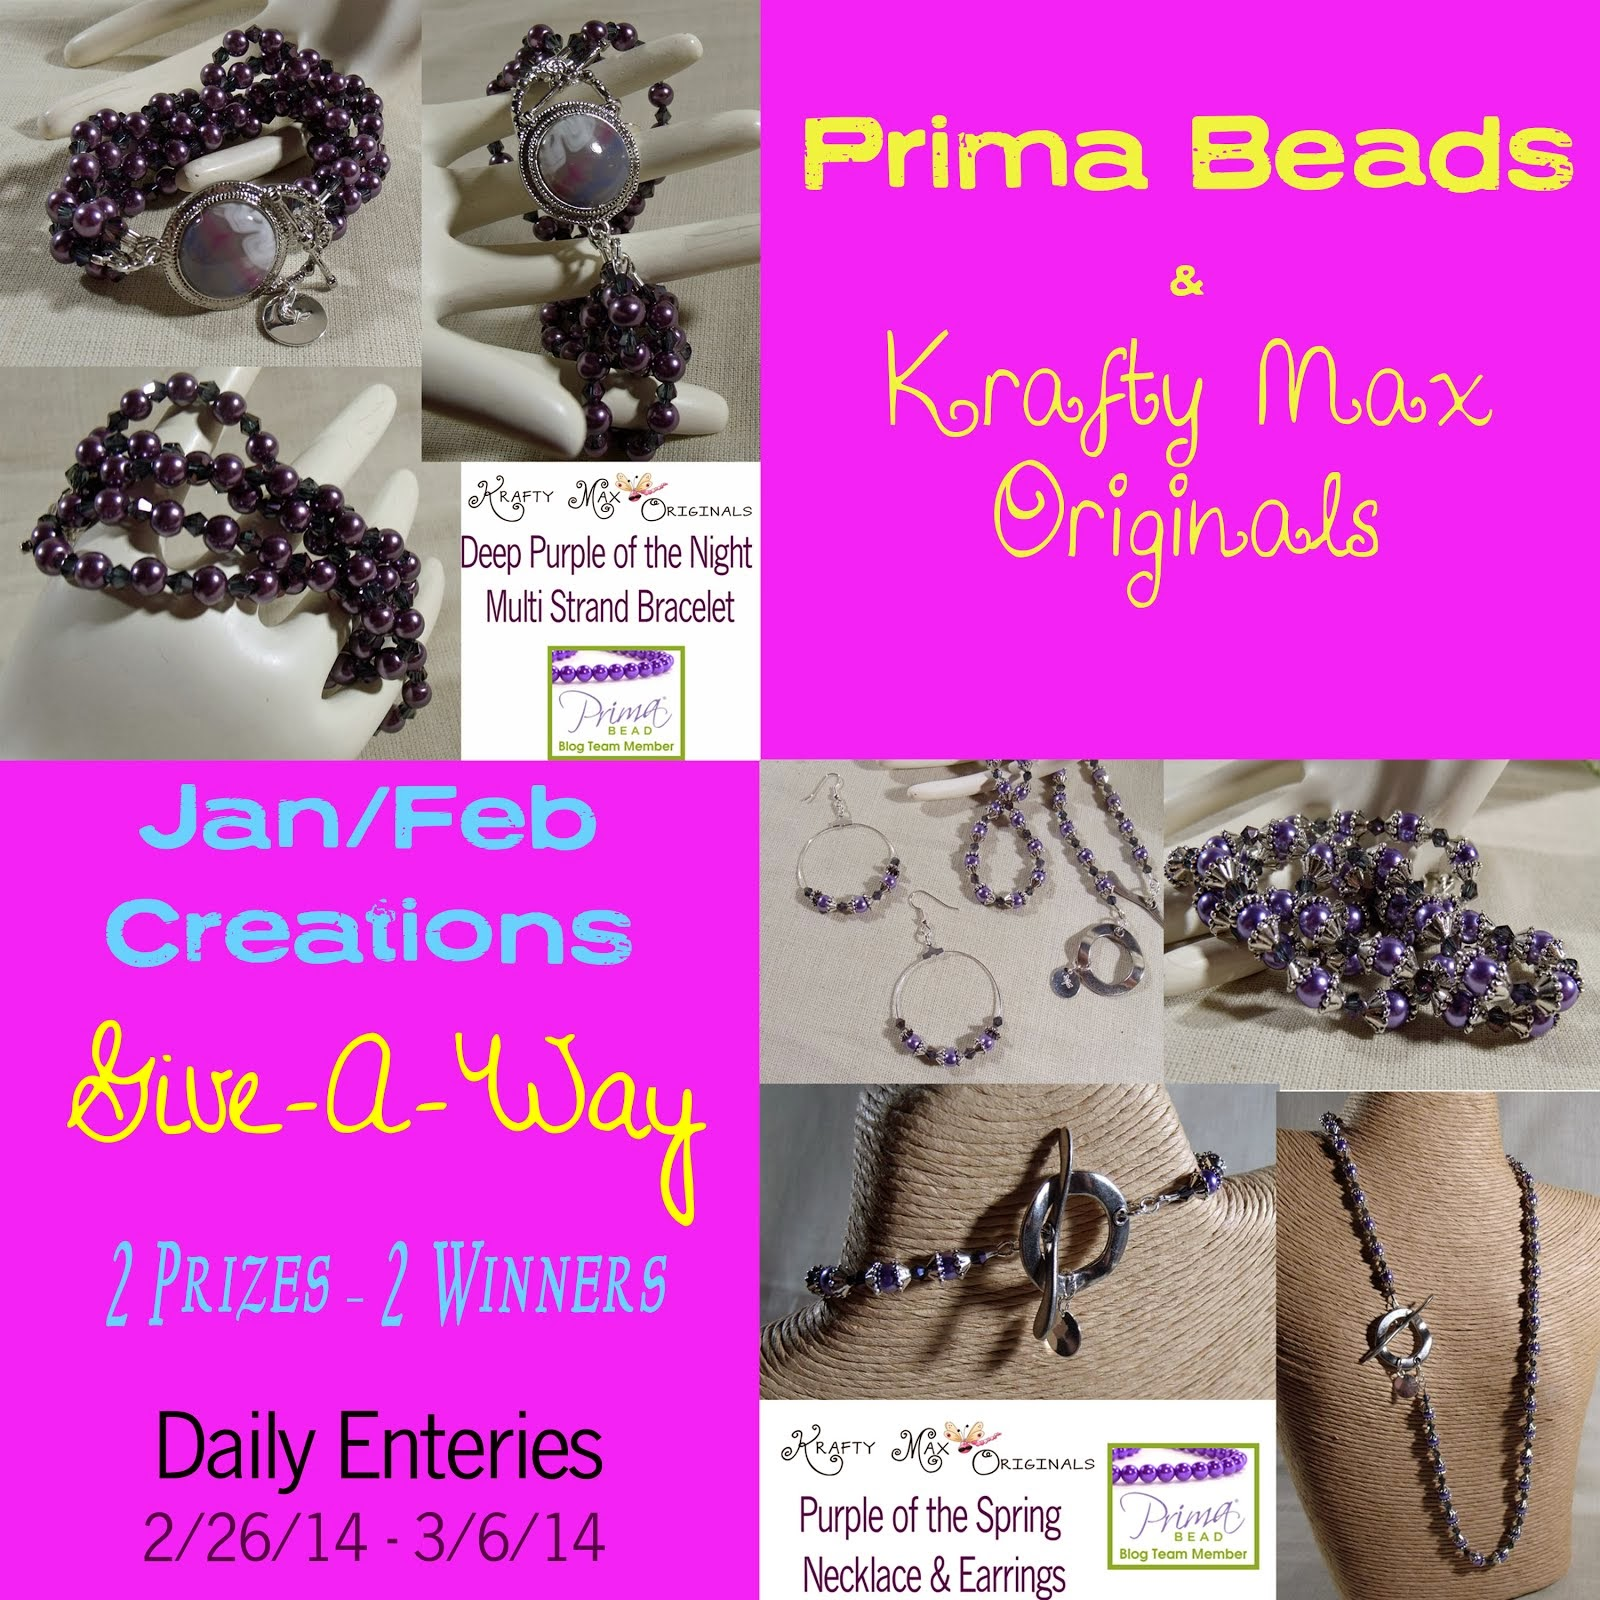 http://kraftymax.blogspot.com/2014/02/prima-beads-and-krafty-max-give-way.html